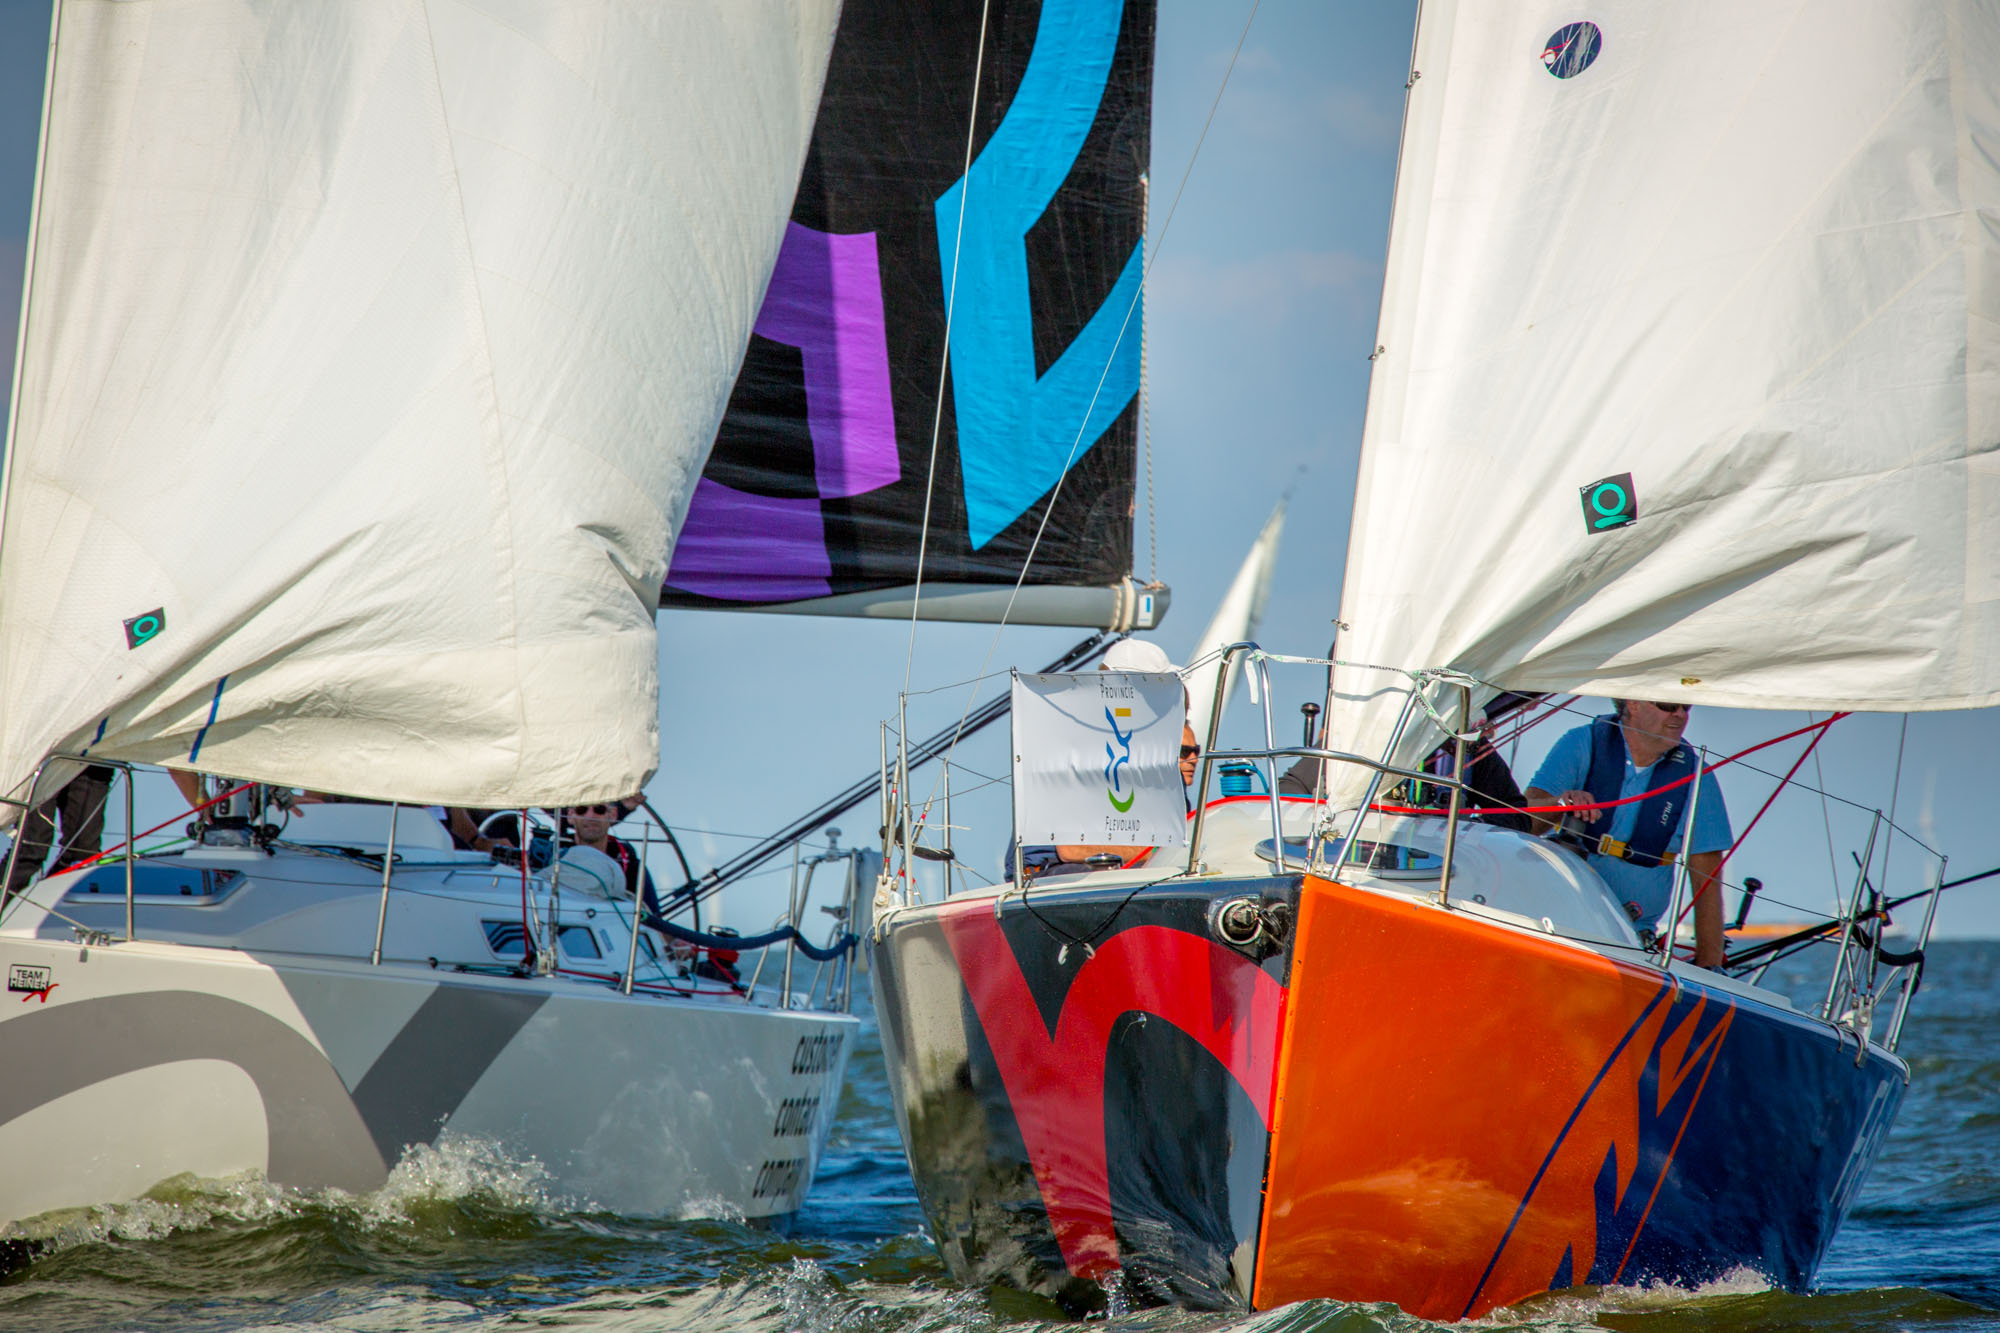 [Job Knoester] Team Heiner - Regio Zwolle Regatta 2016 SMALL-91